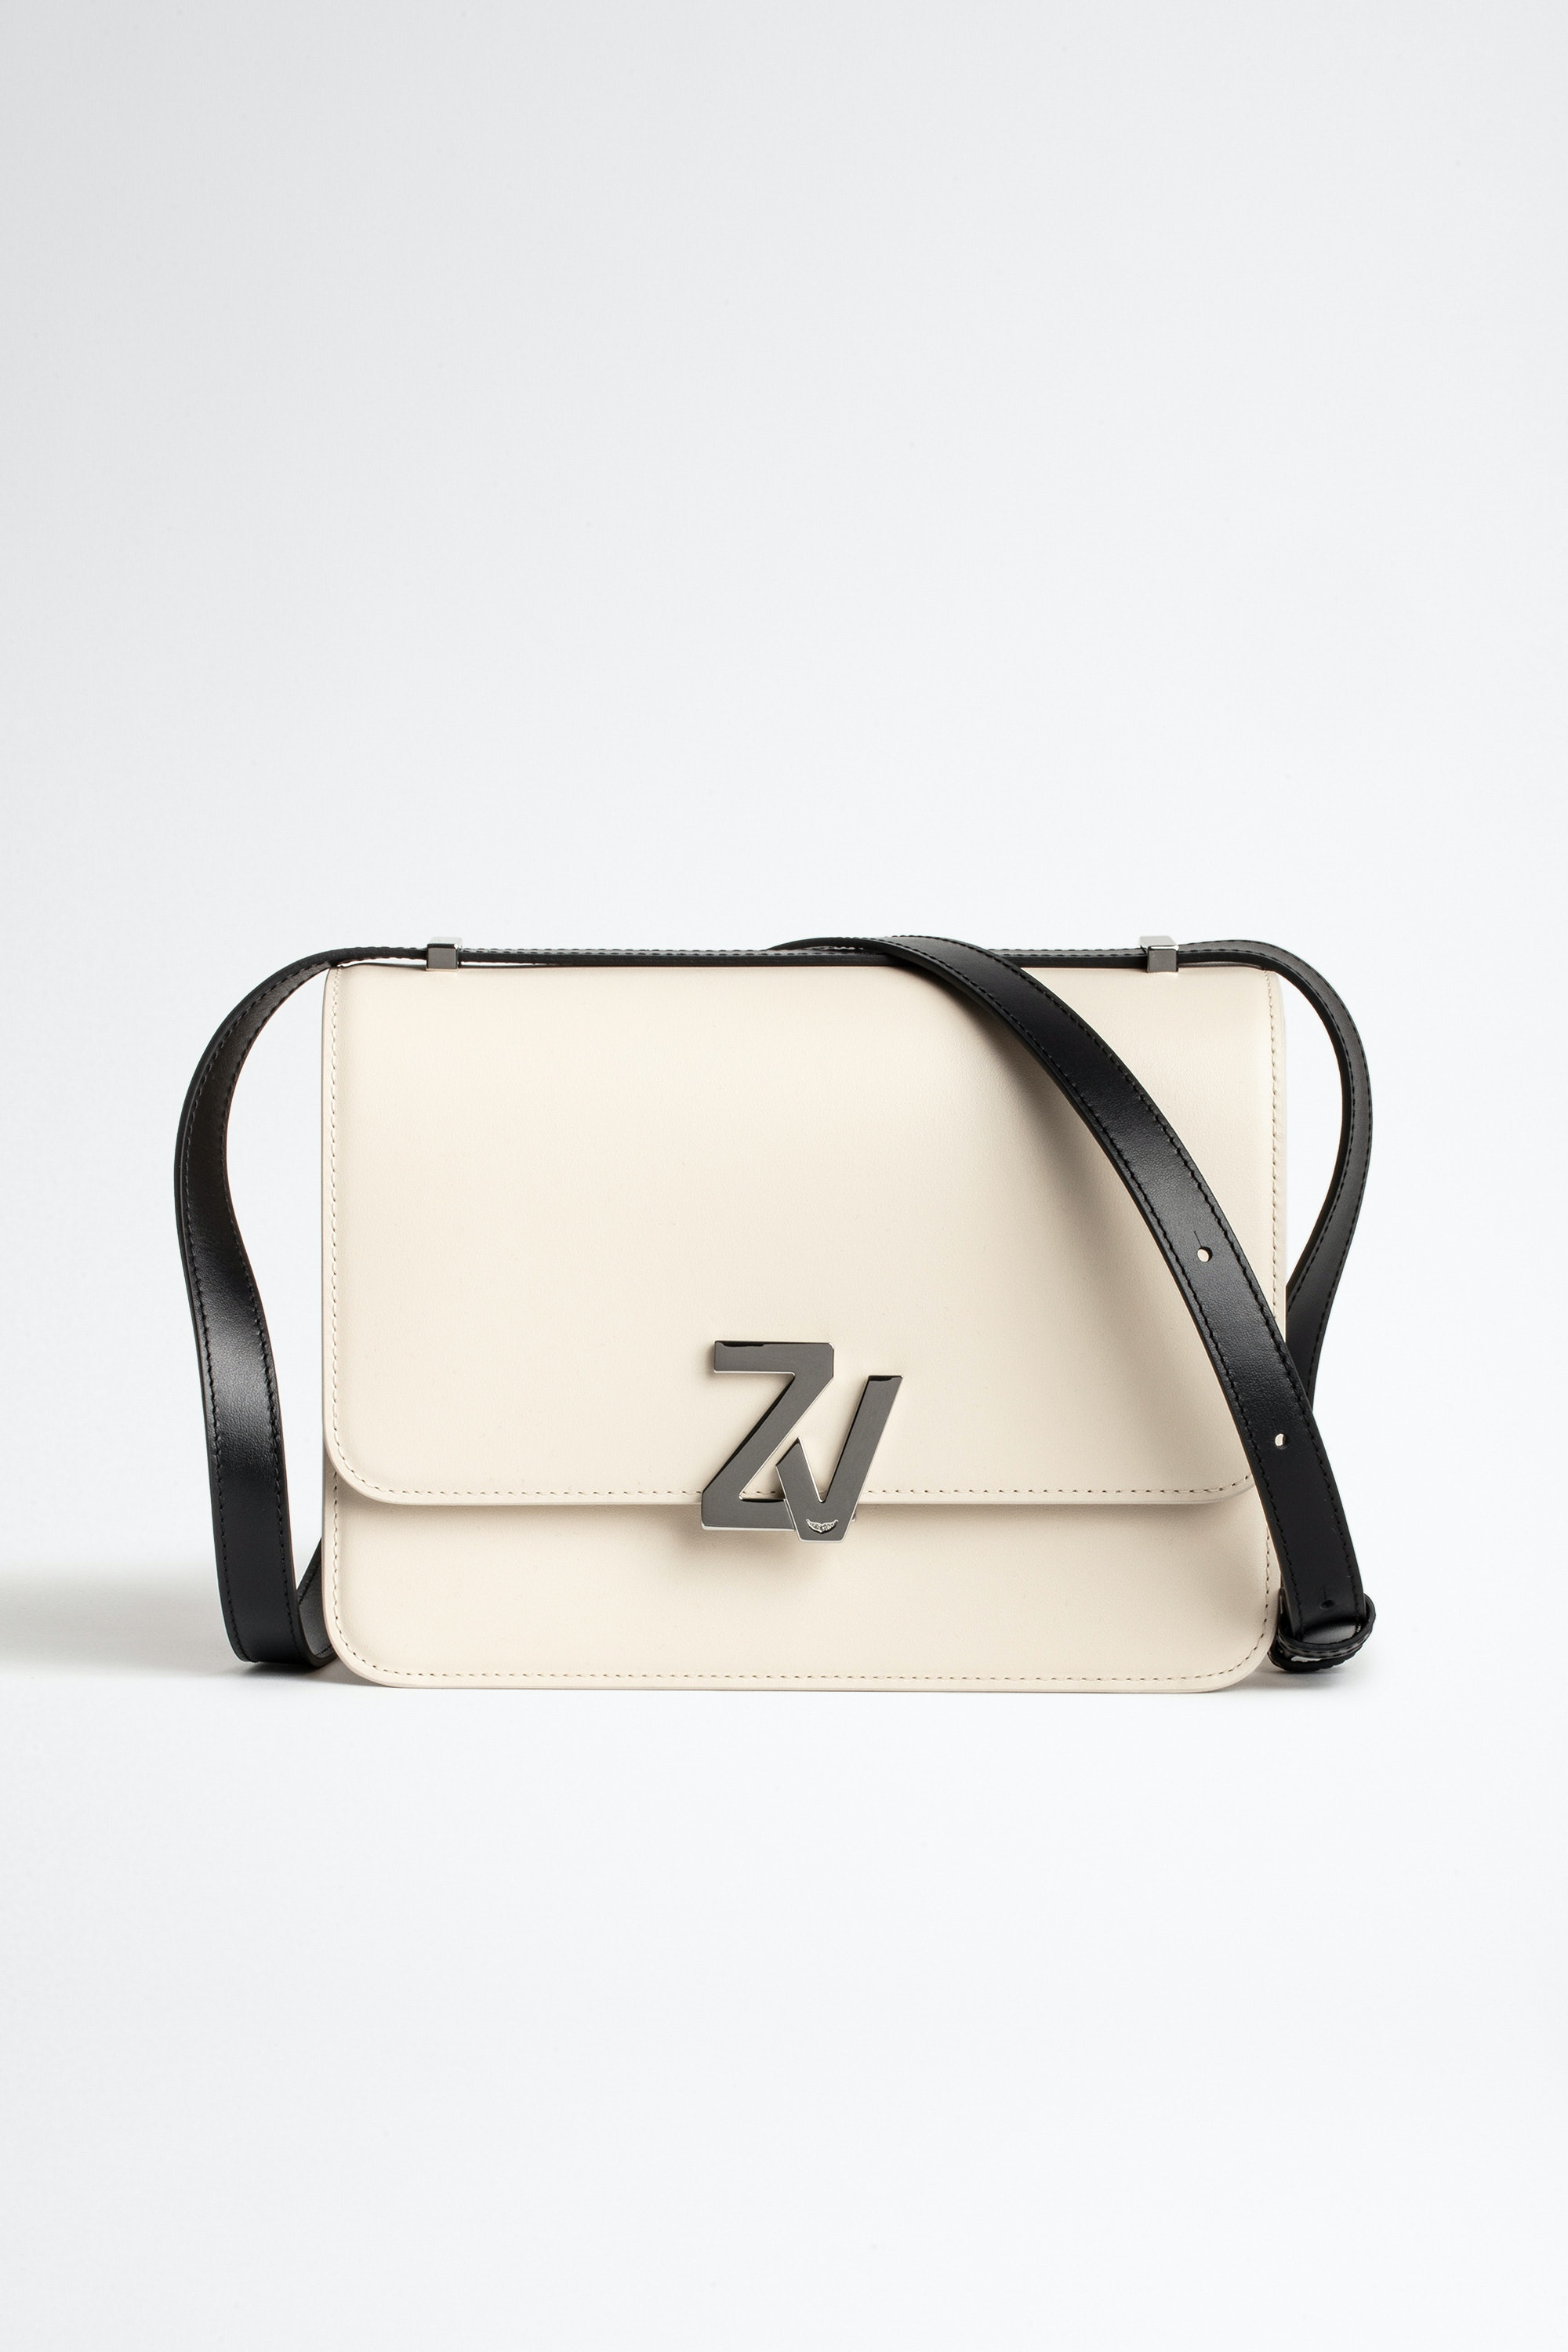 ZV Initiale Le City Bag